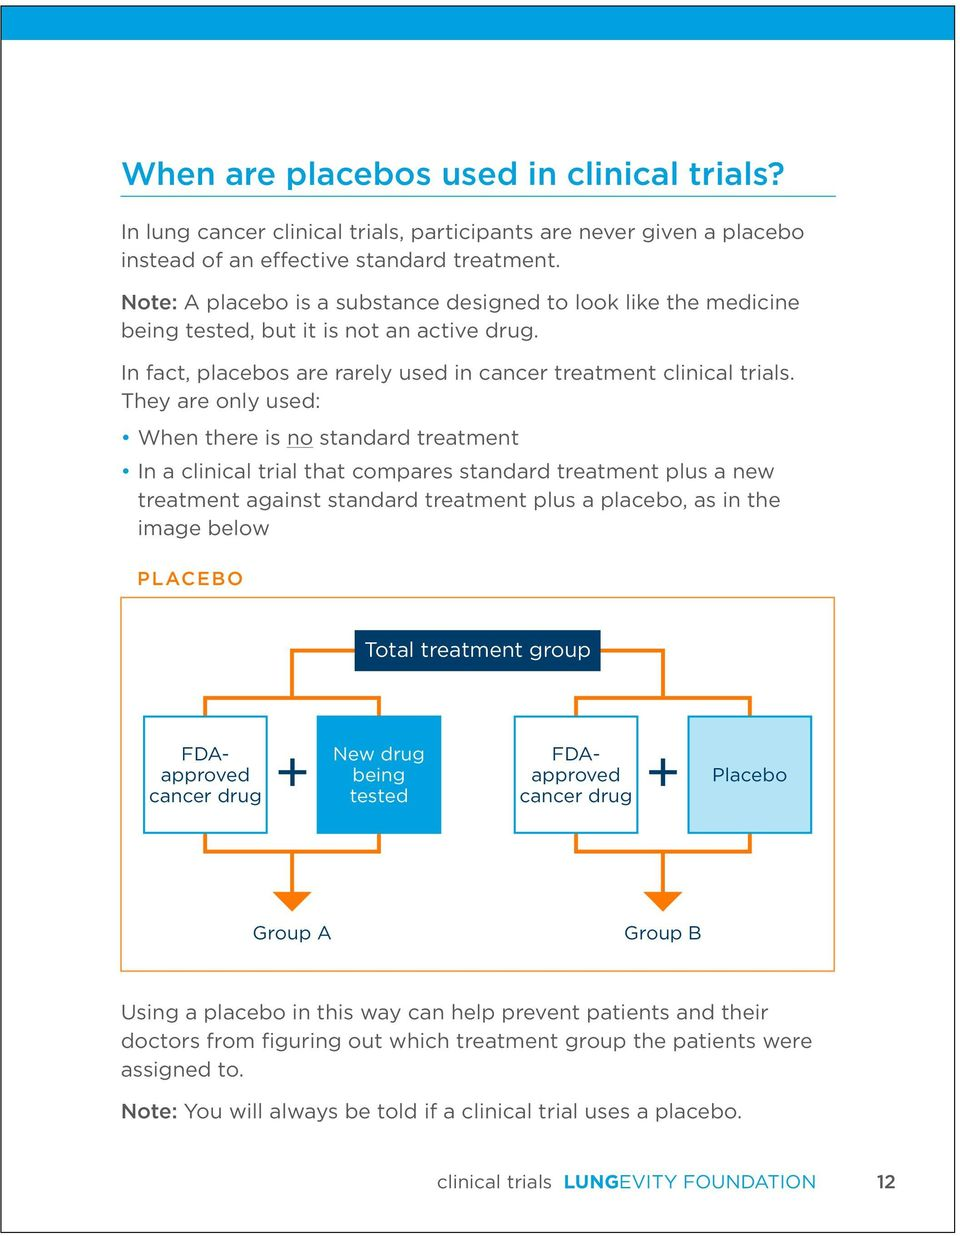 They are only used: When there is no standard treatment In a clinical trial that compares standard treatment plus a new treatment against standard treatment plus a placebo, as in the image below